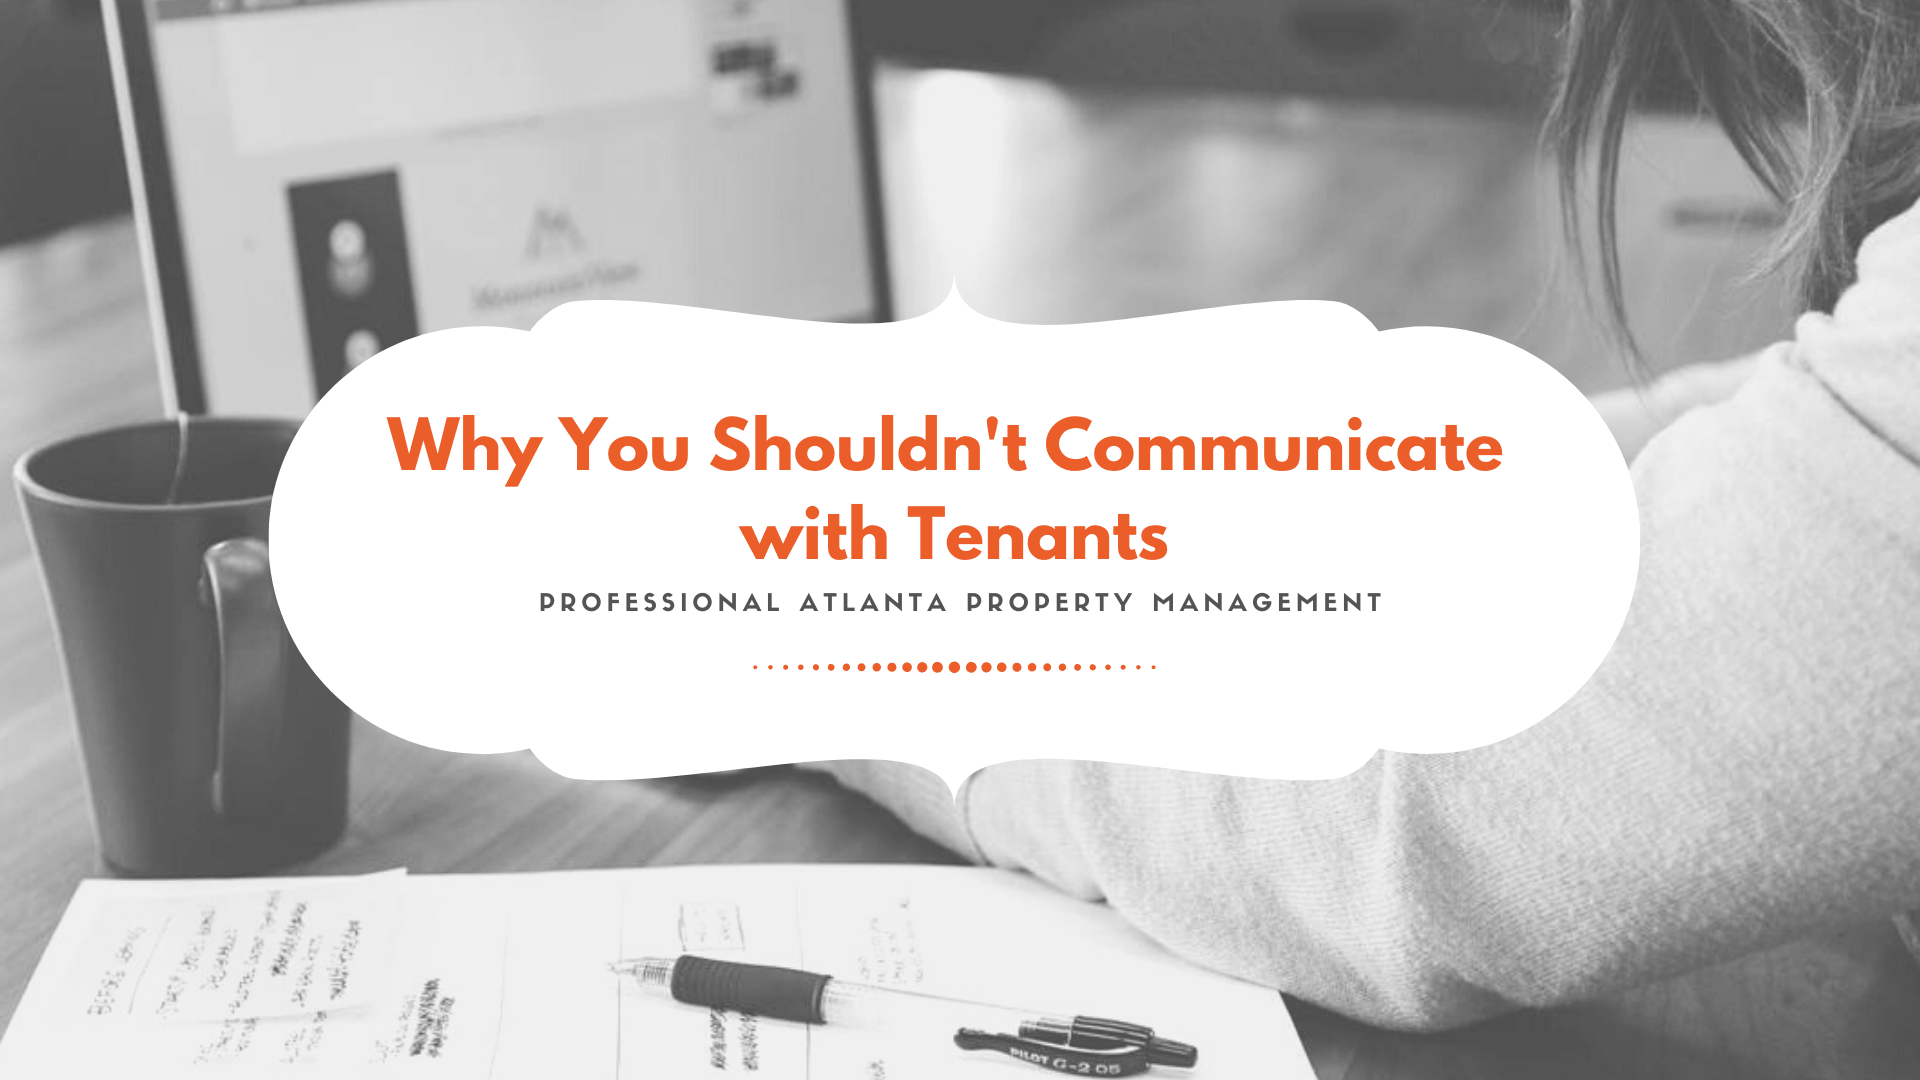 Why as a Homeowner Should I NOT be Communicating with the Tenant if I Have a Management Company?